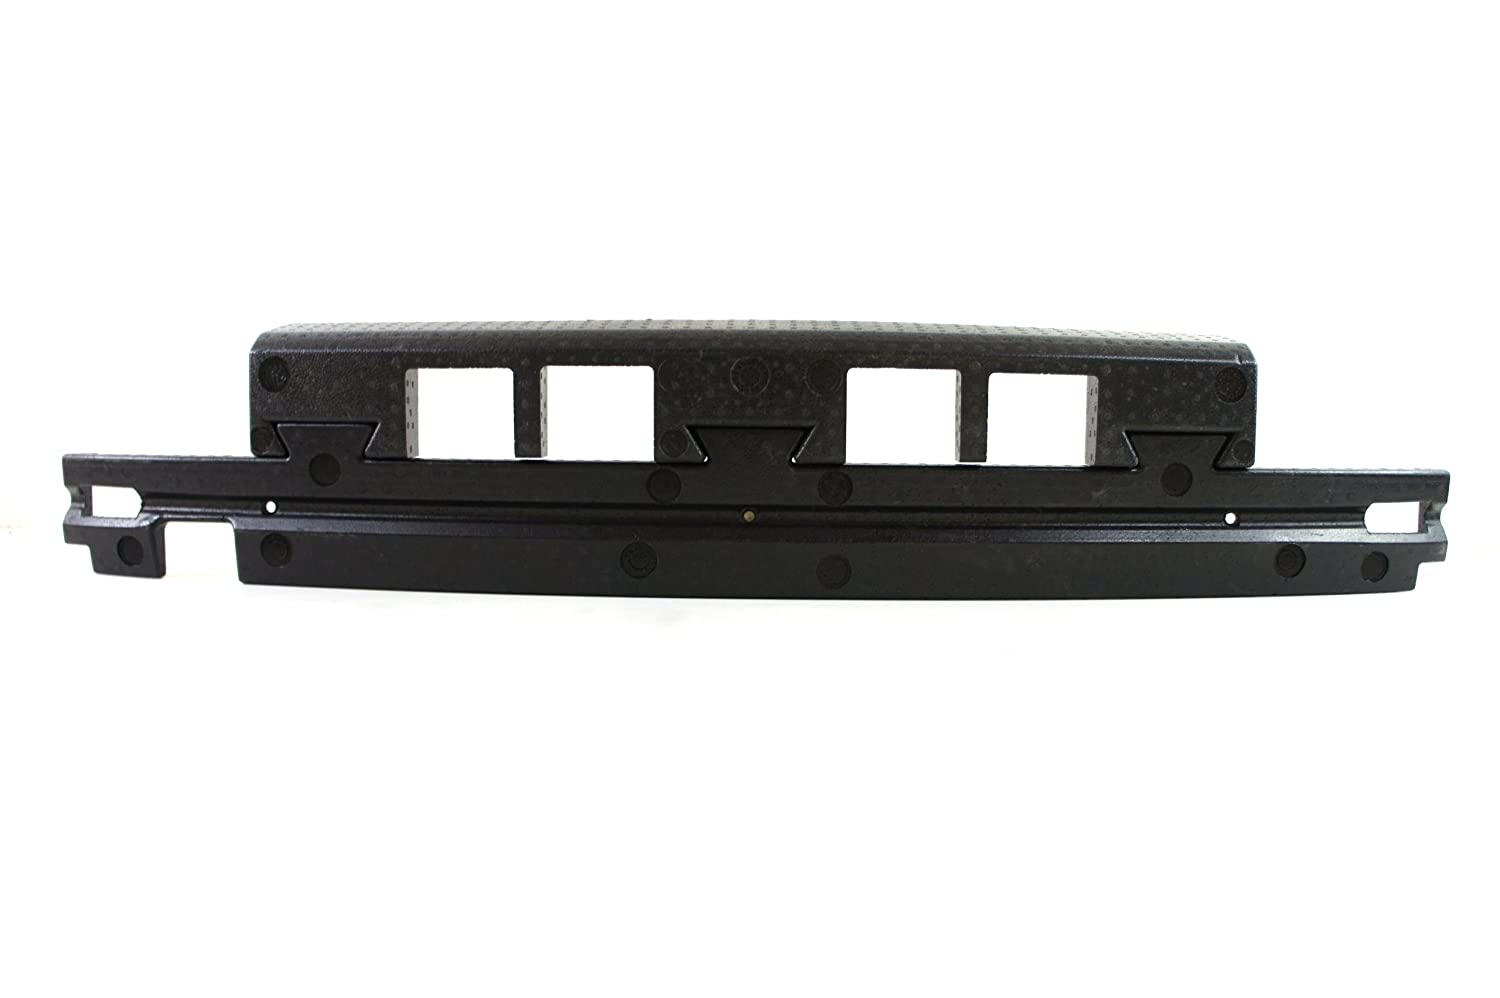 Genuine Chrysler Parts 68002101AB Rear Bumper Energy Absorber